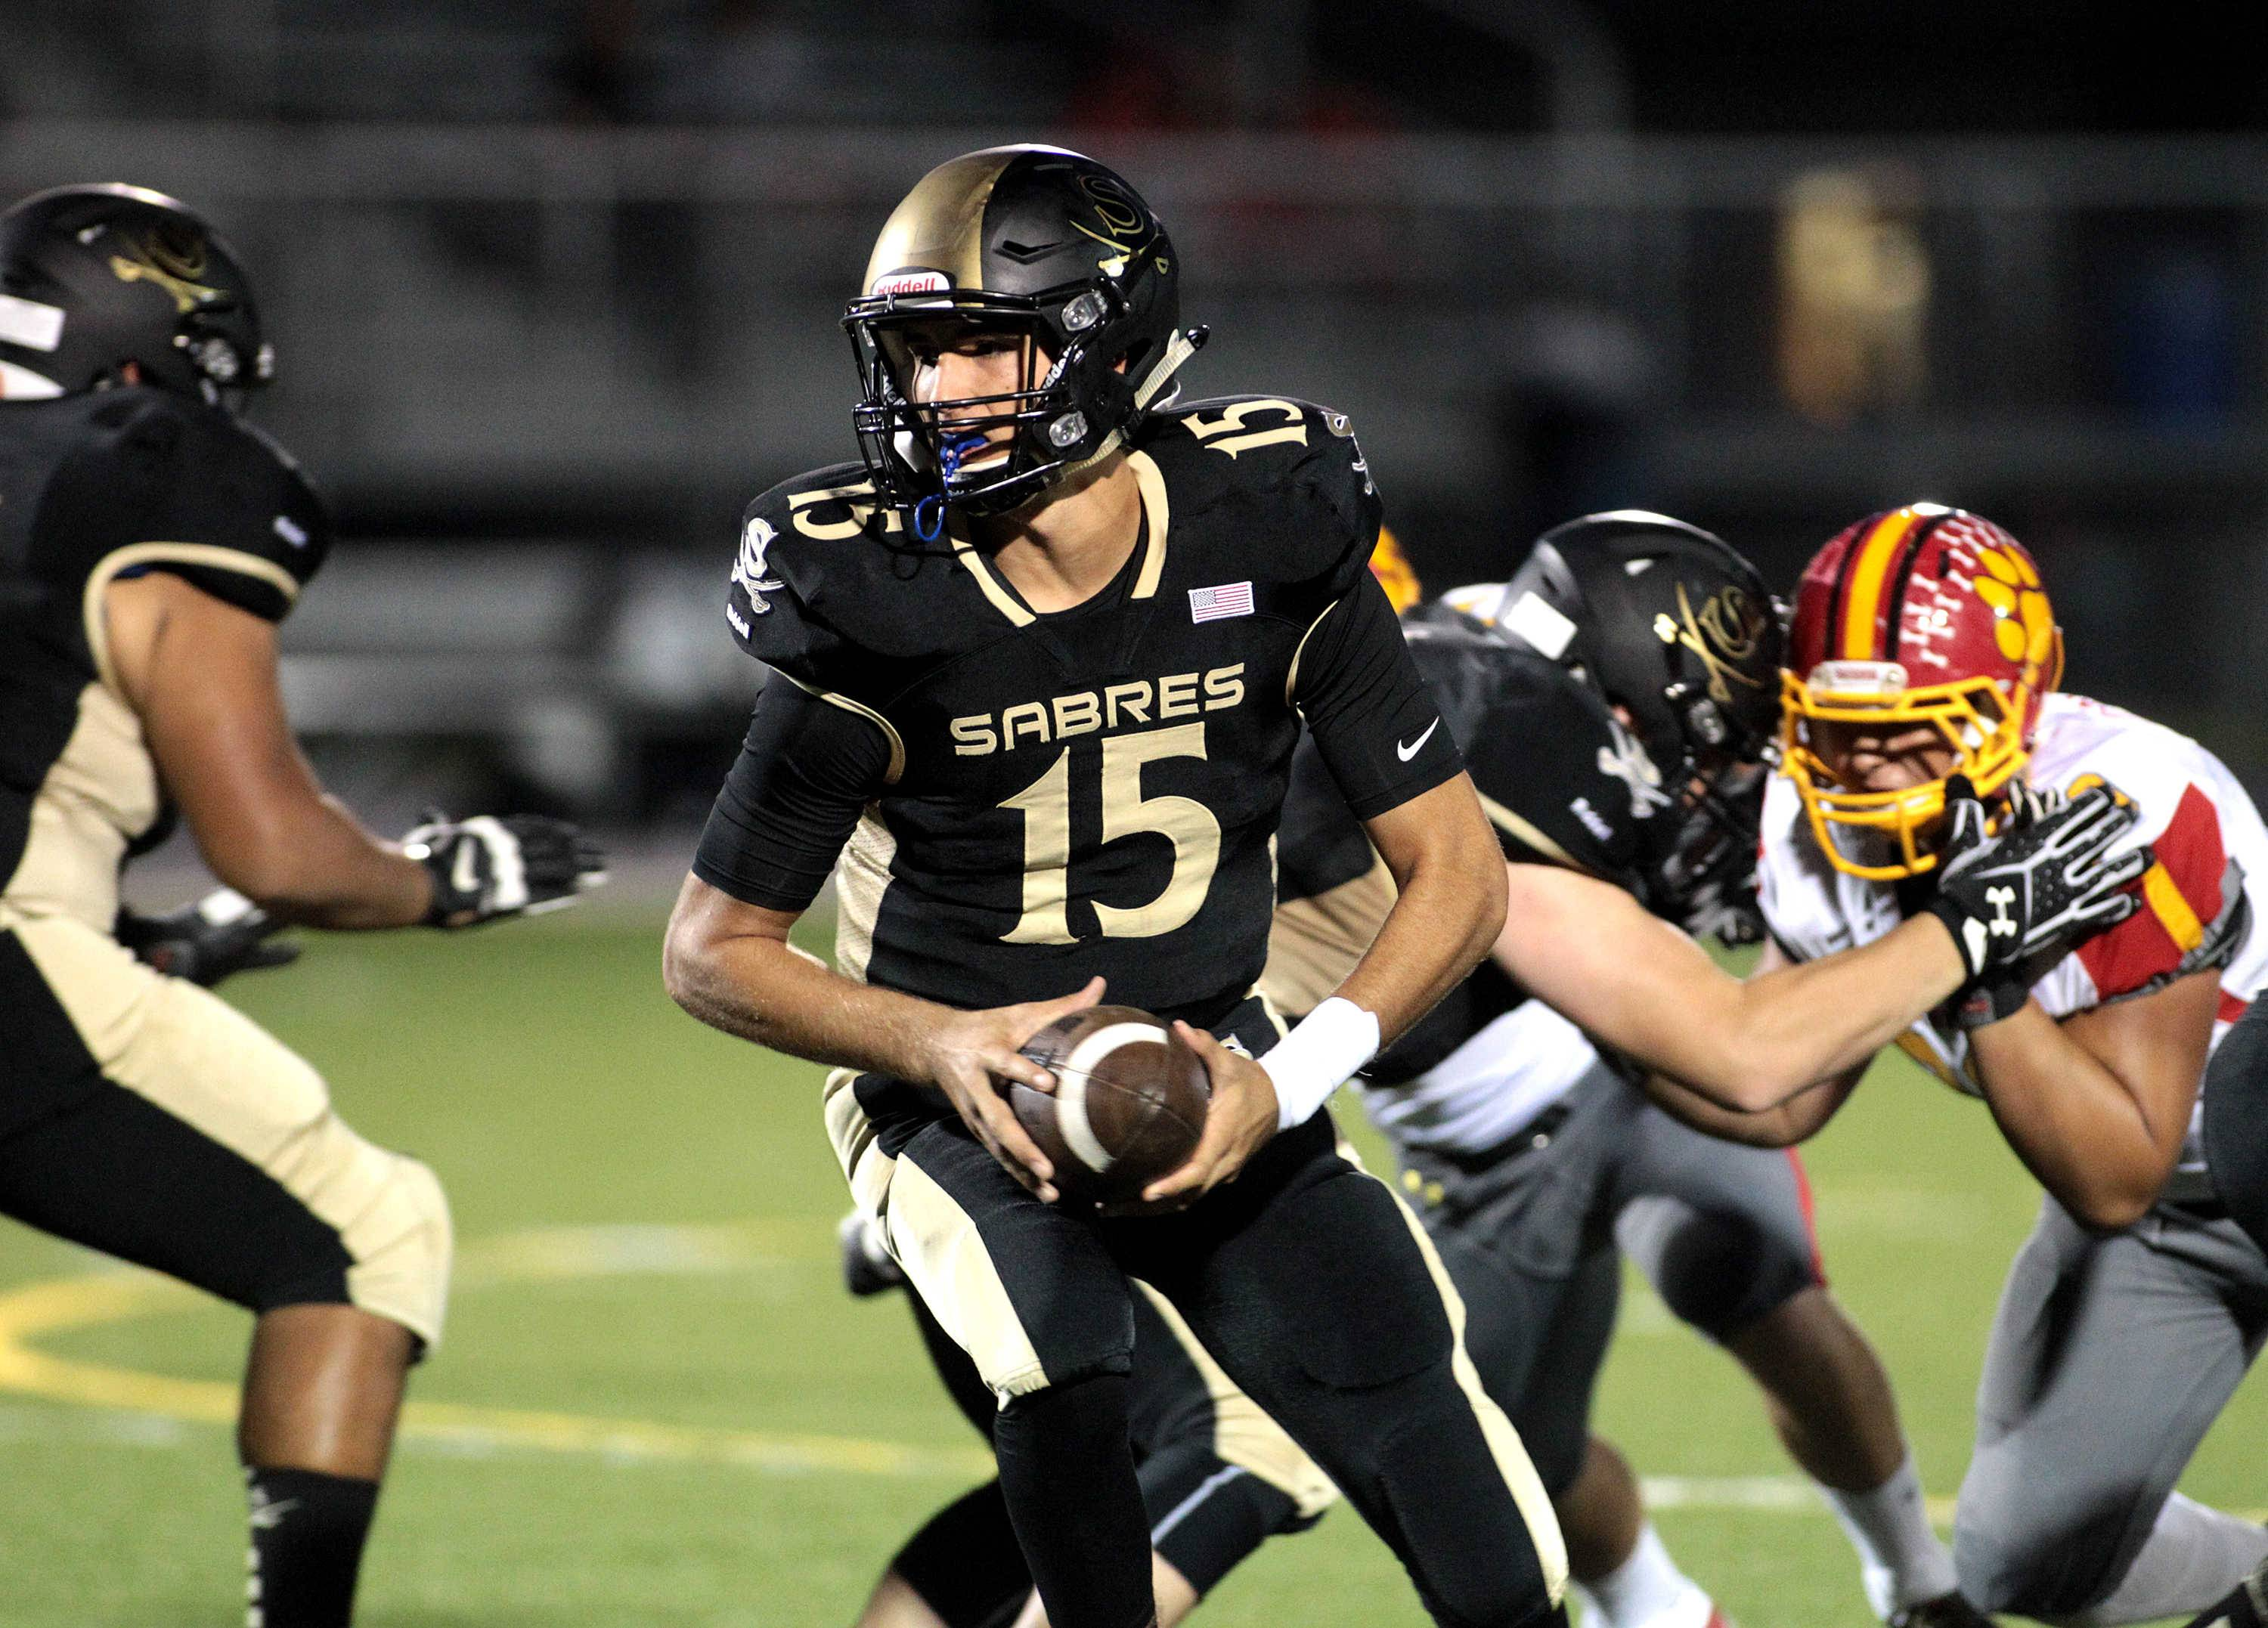 Streamwood quarterback Brendon Marton (15) looks to hand off the ball during a home game against Batavia Sept. 9.